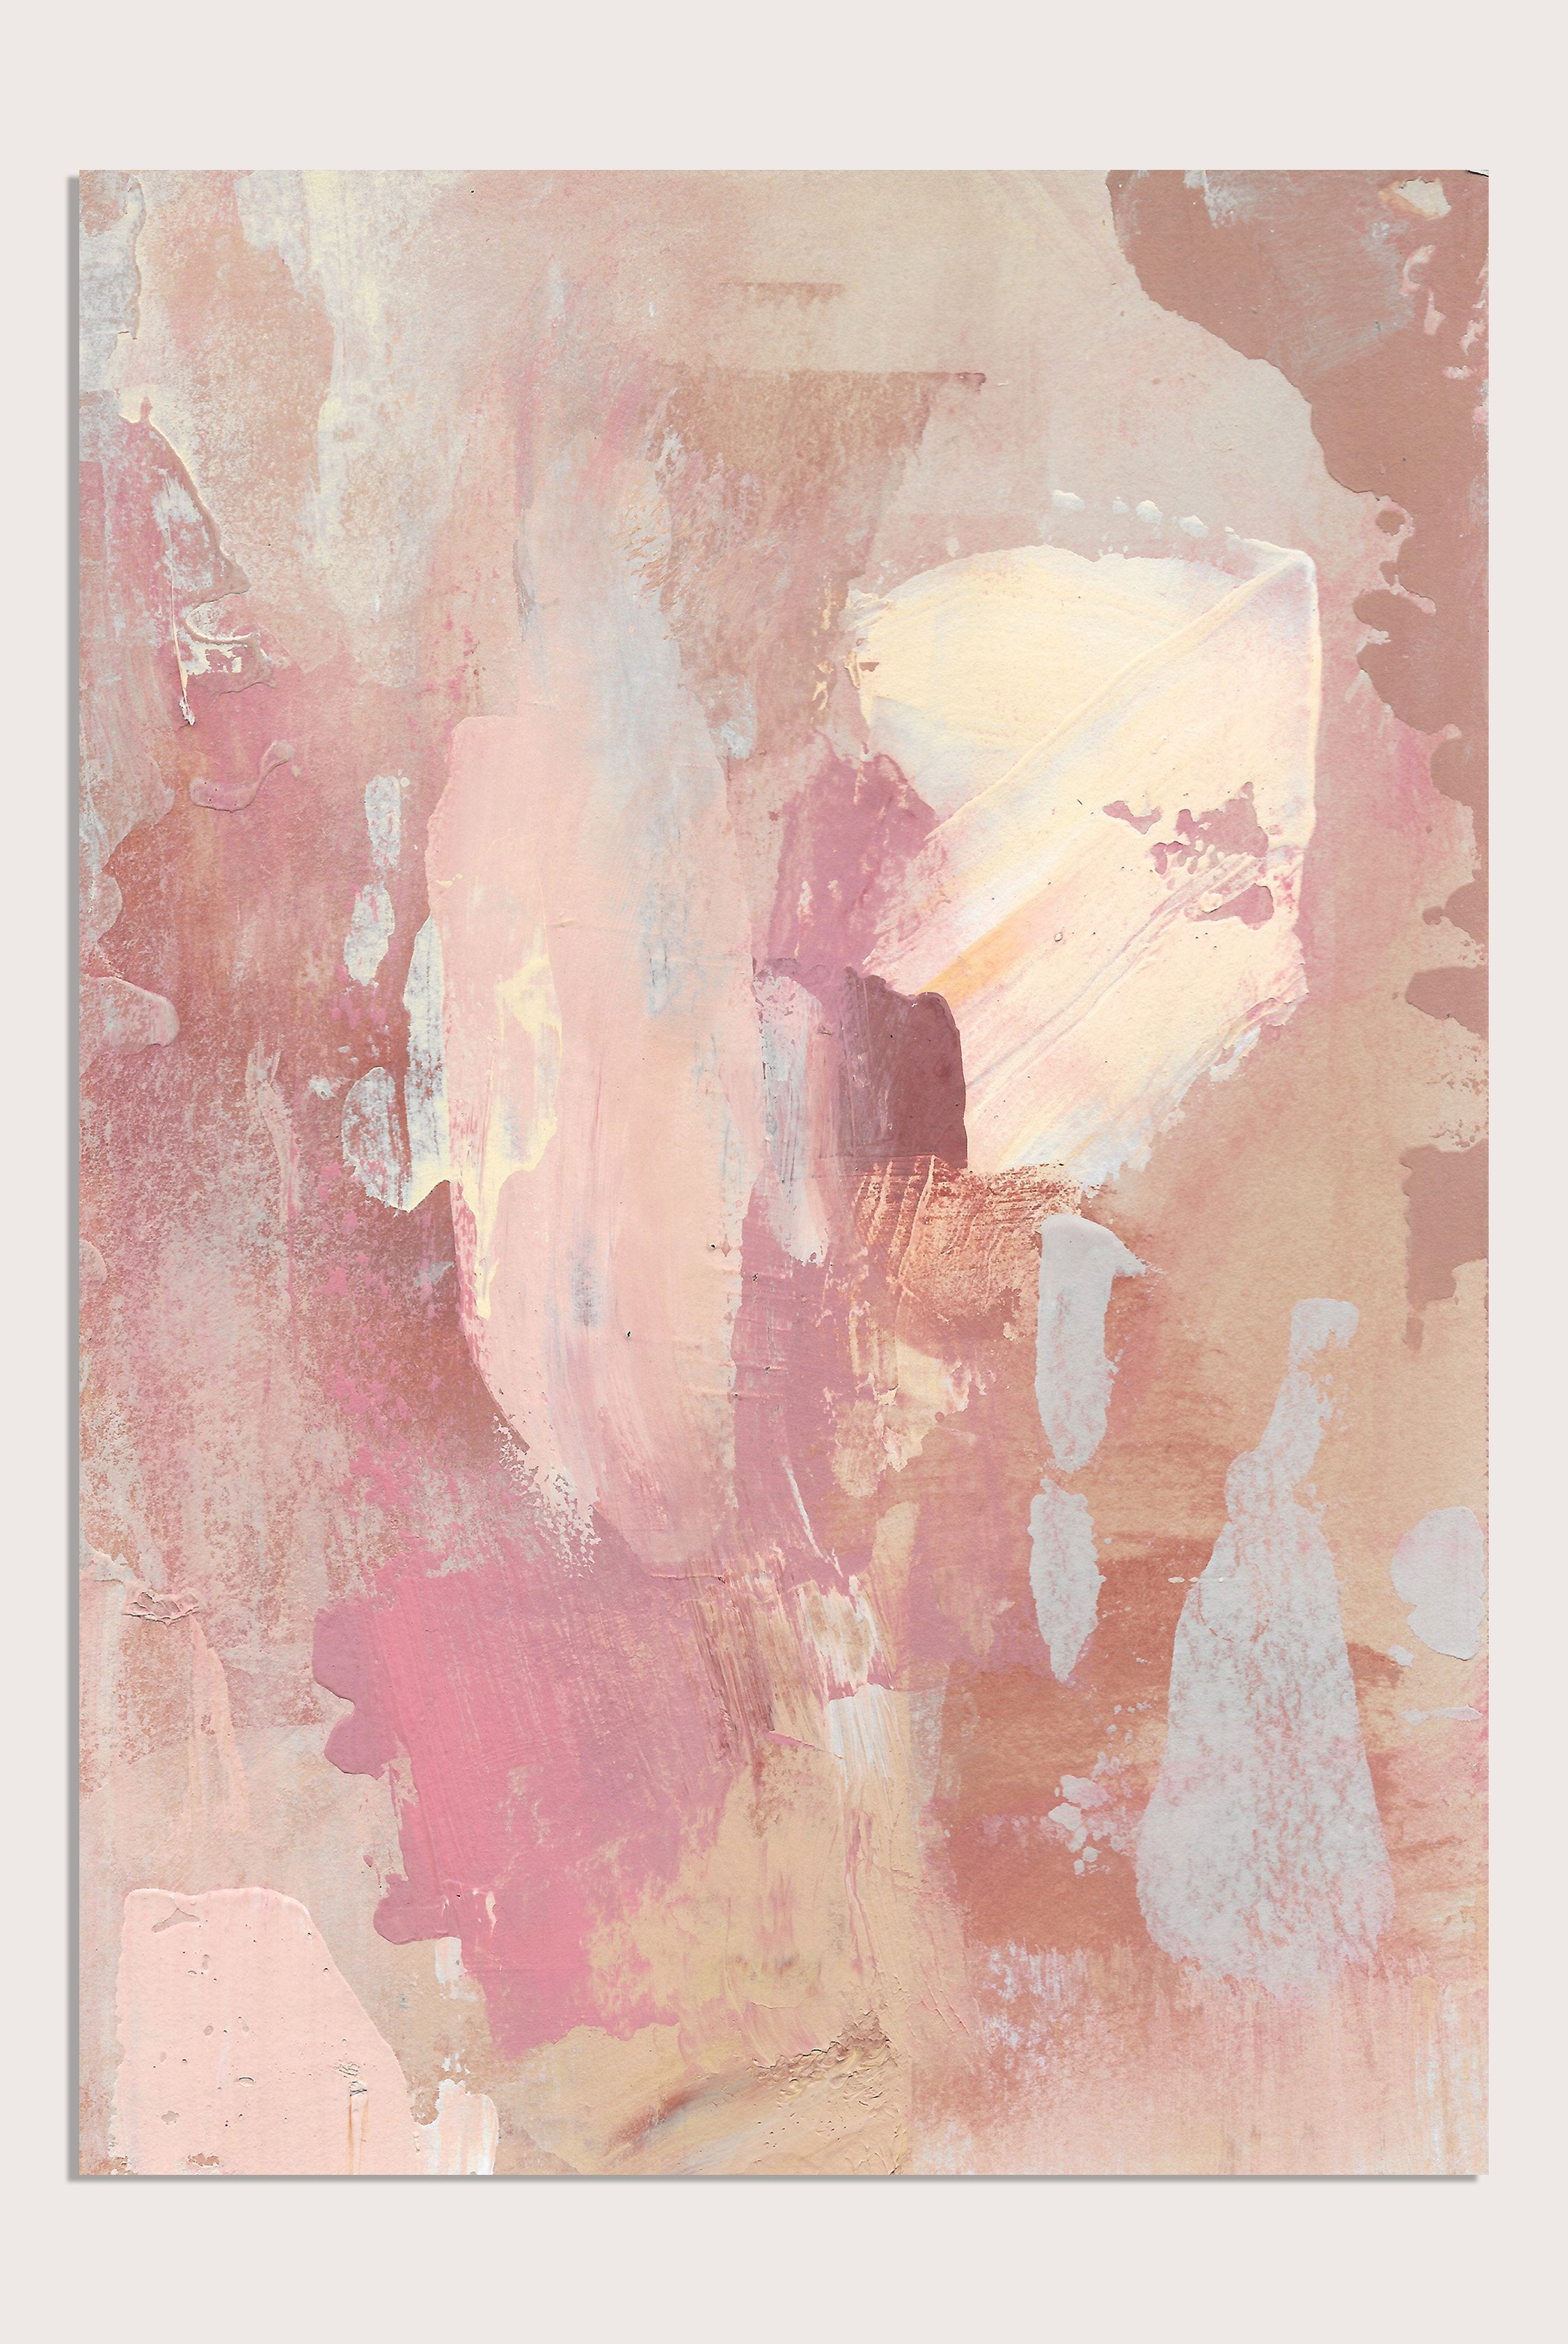 'Medina Marrakesh I', an abstract painting by contemporary, woman artist Katherine Sheers